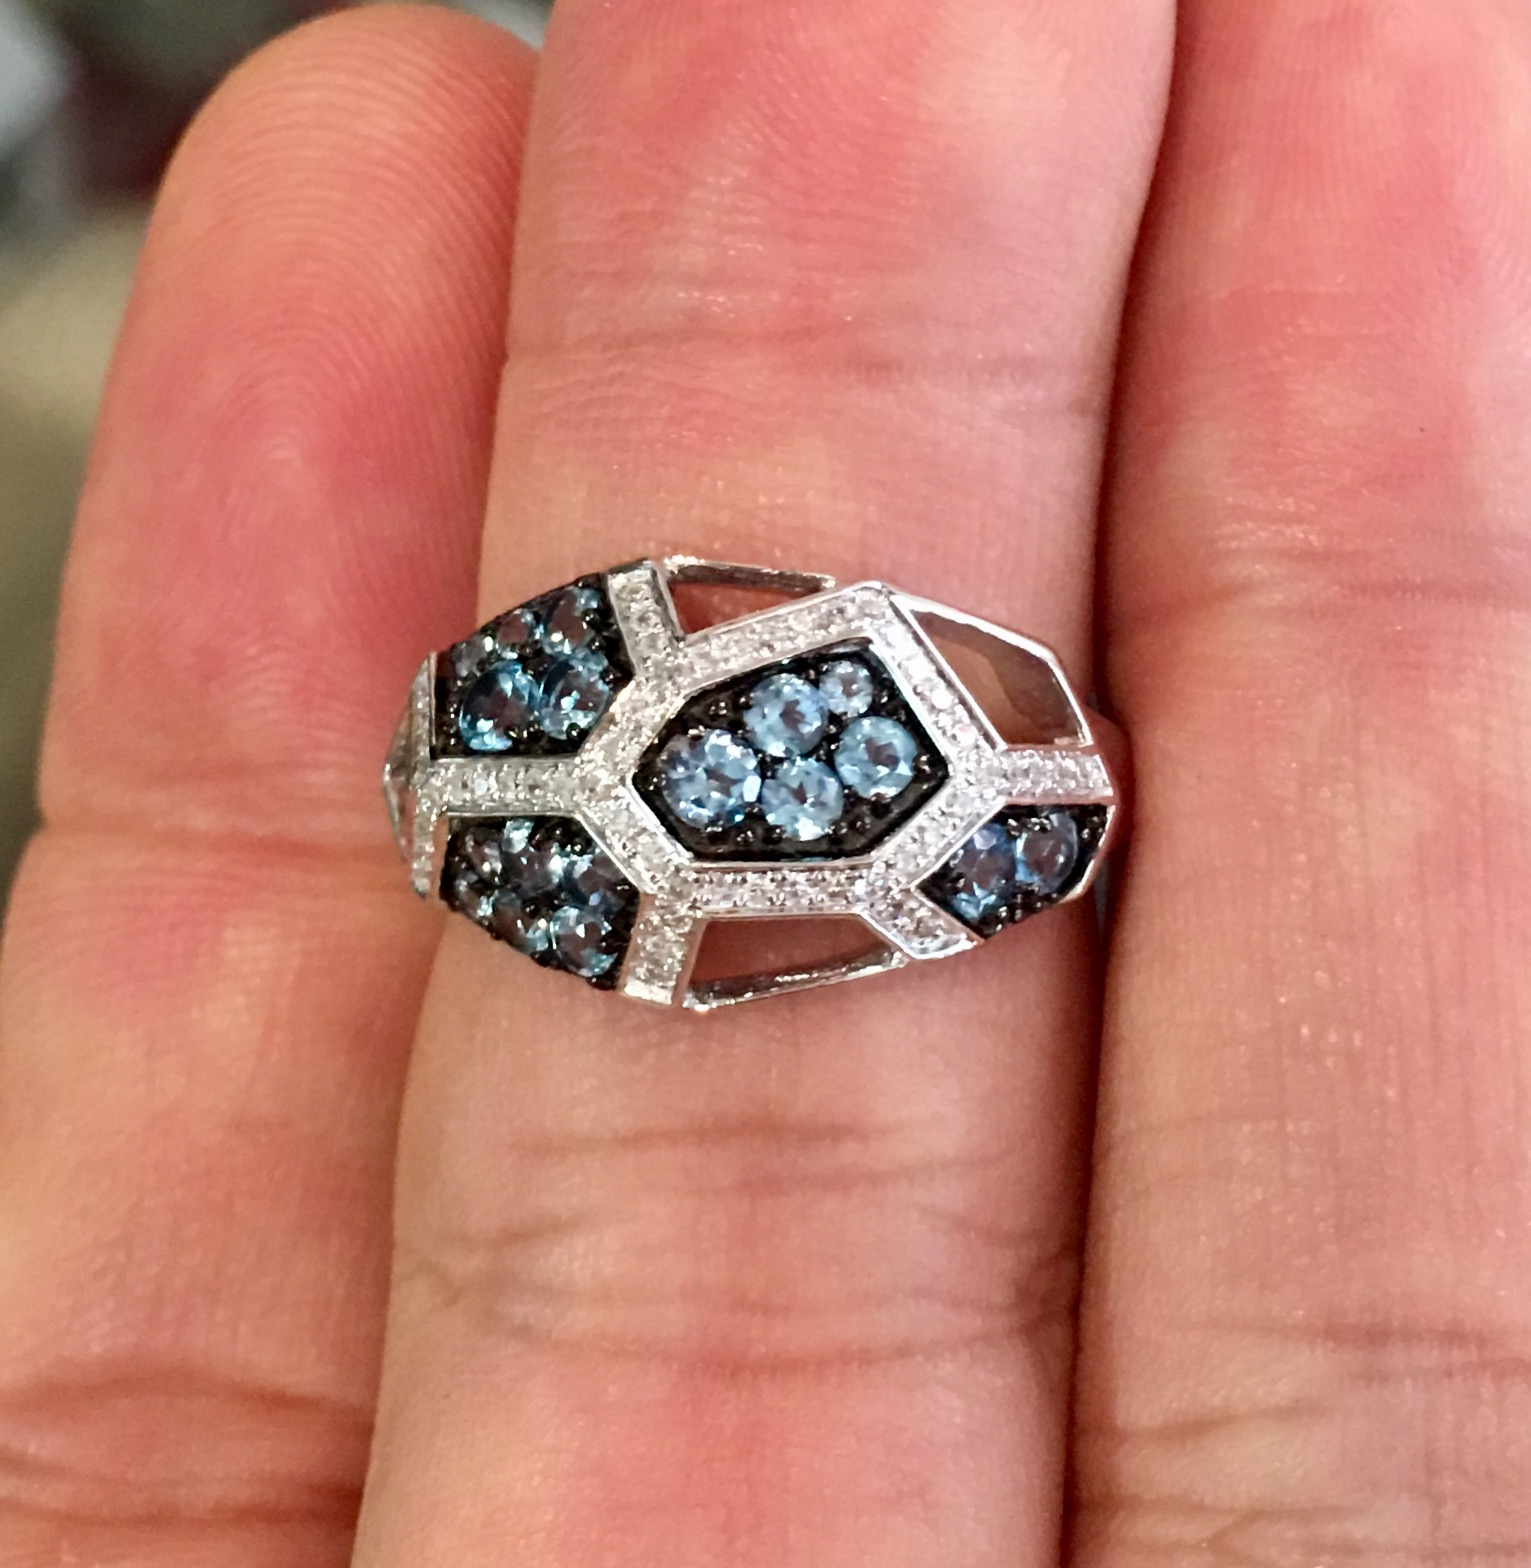 This 14kwg blue topaz ring is a striking contemporary piece sure to add a little pizzazz to any collection.